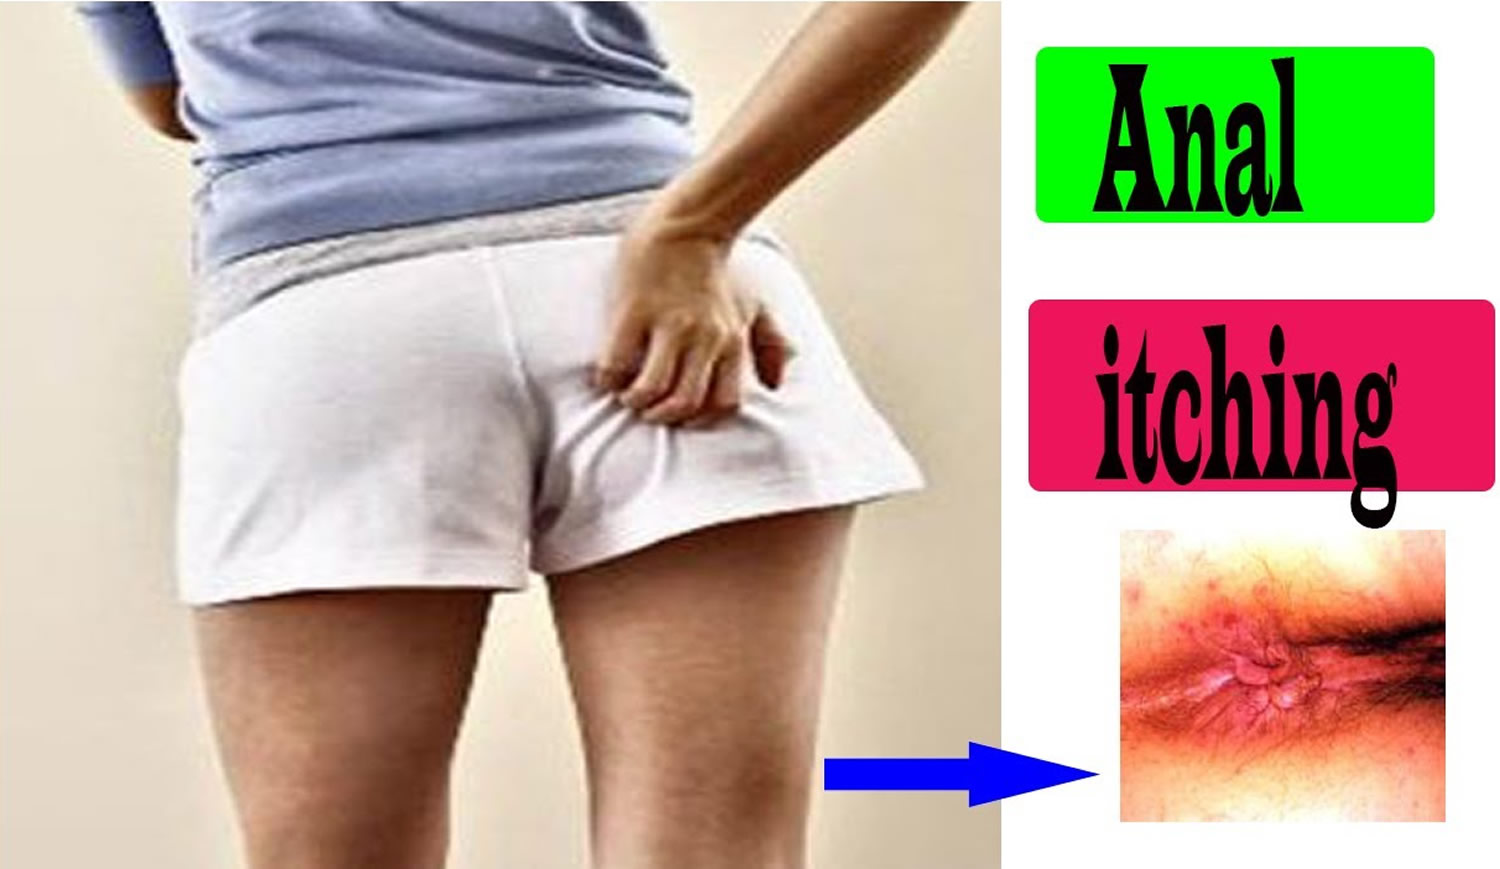 Itchy Anus - Causes, Treatment - How To Stop Anal Itching-1106